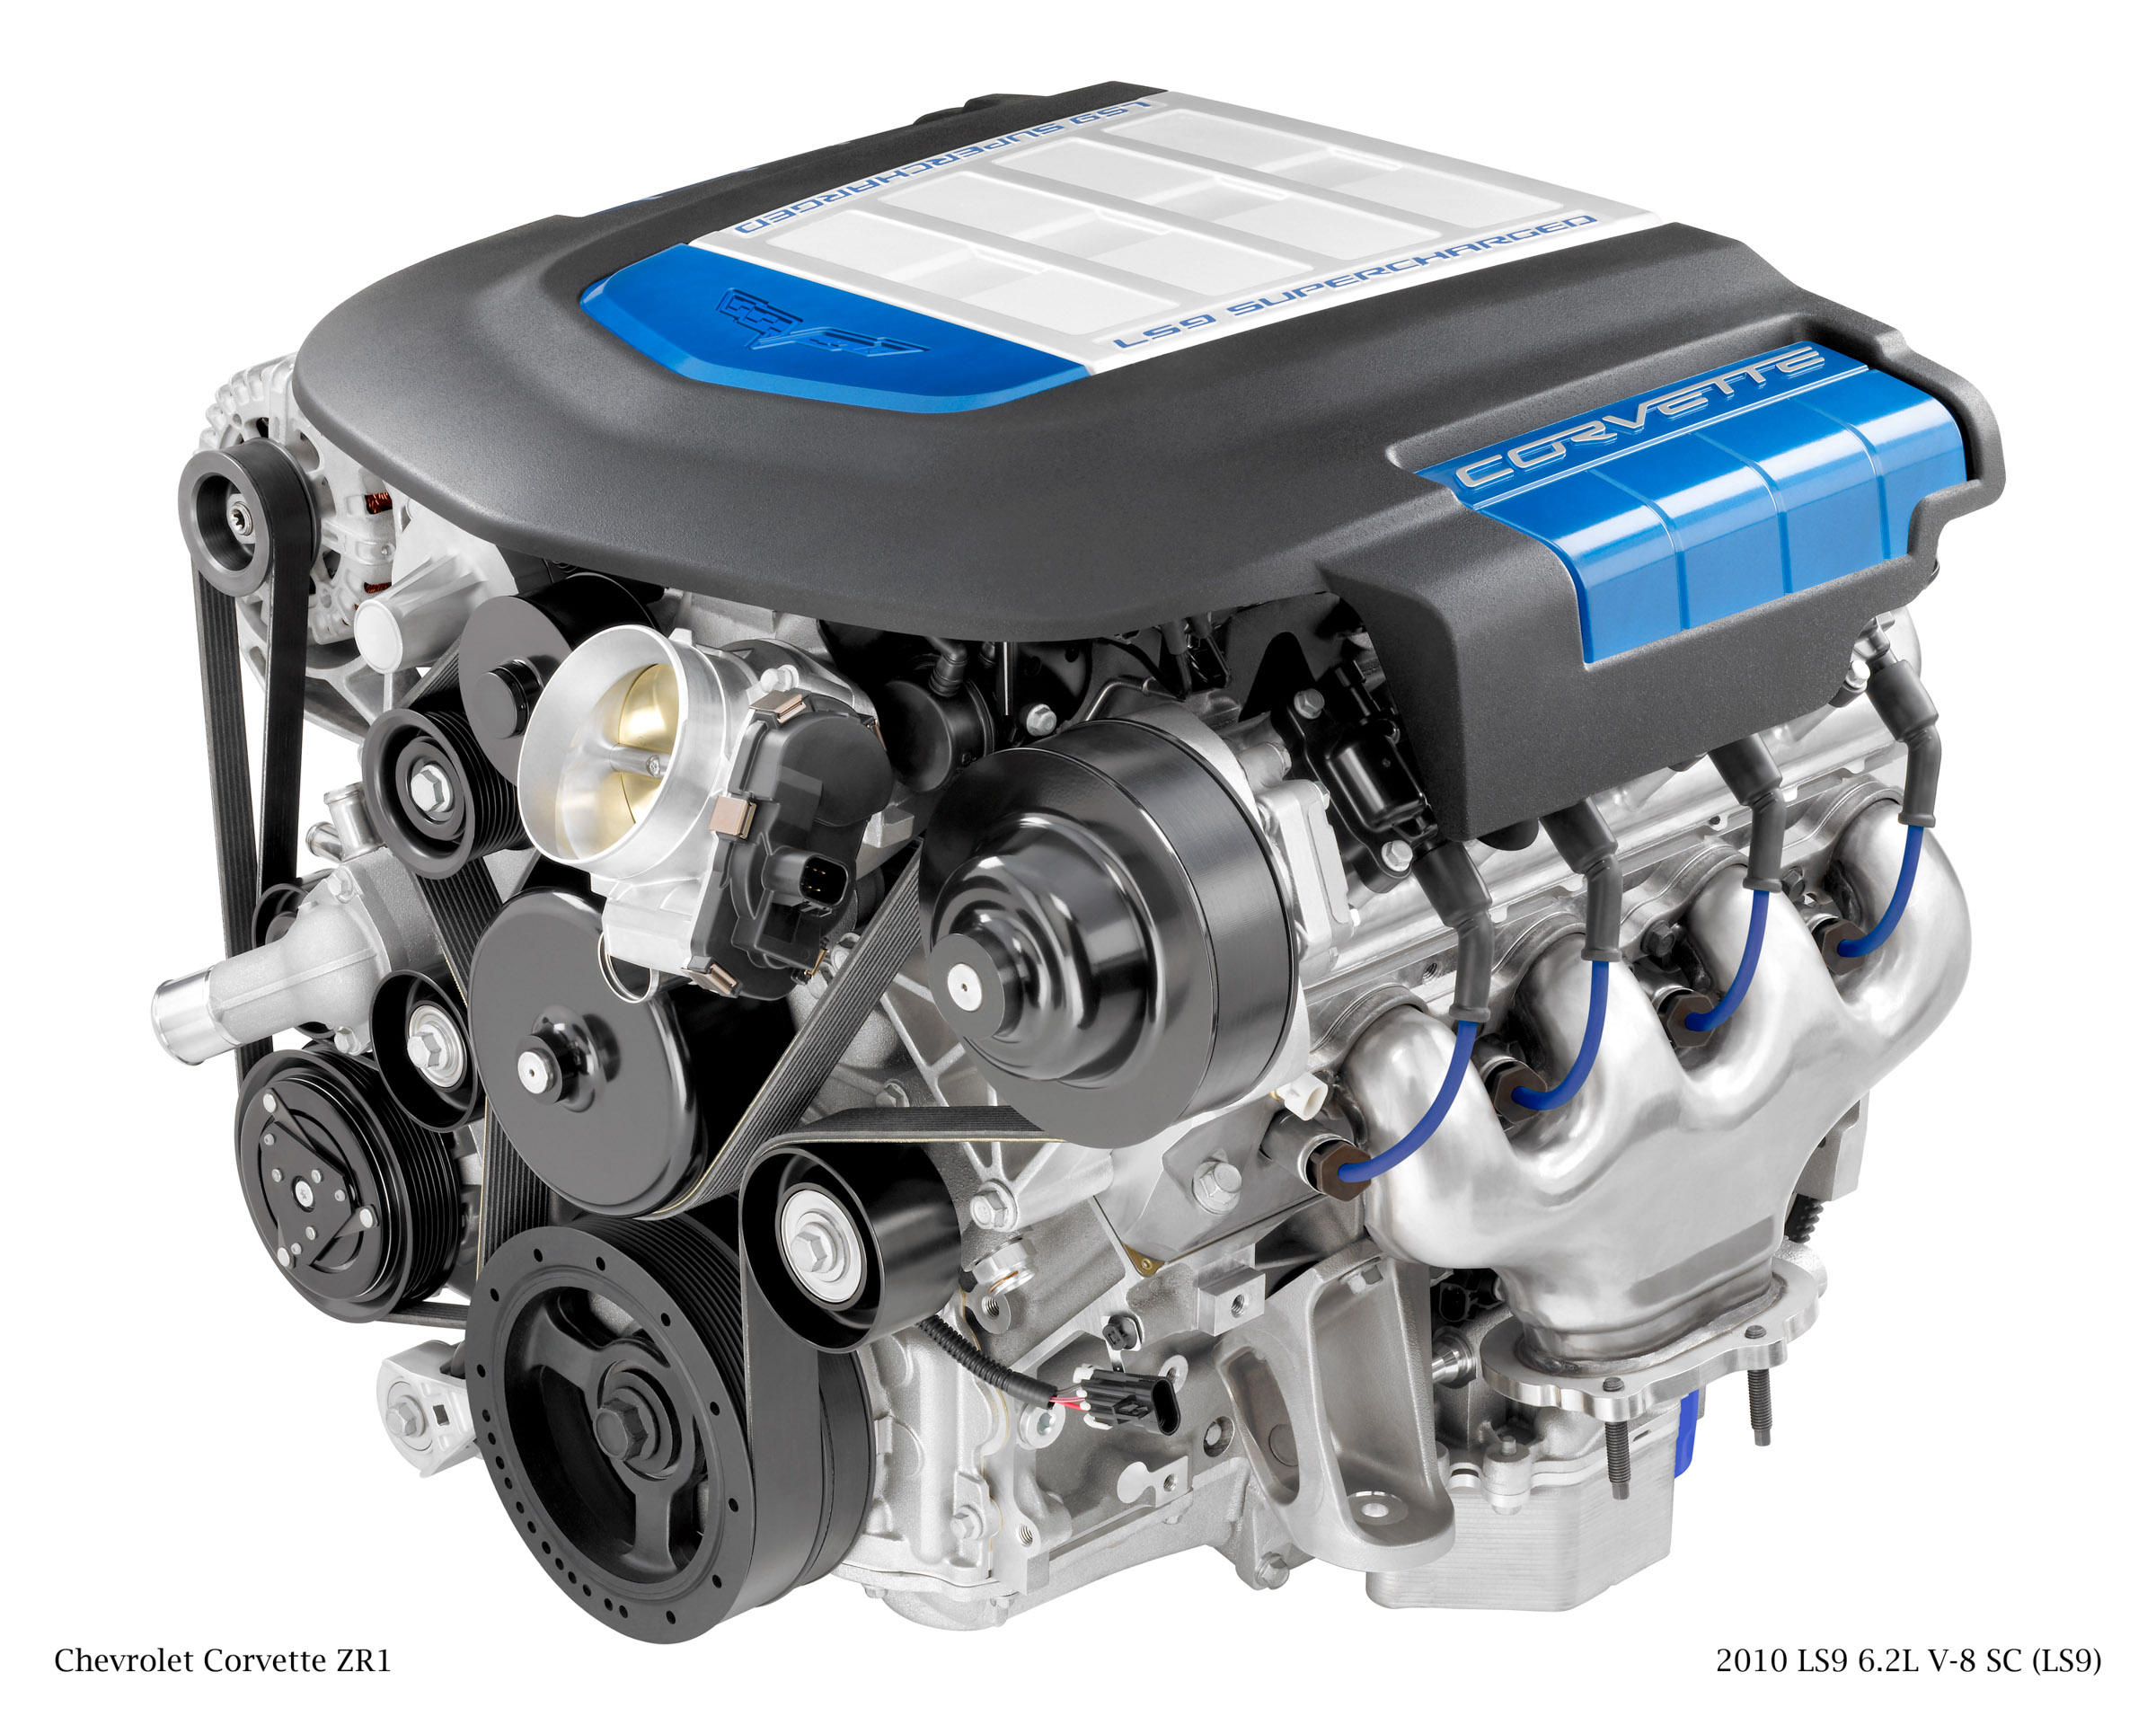 The LS9 Engine from the 2009 Chevrolet Corvette ZR1